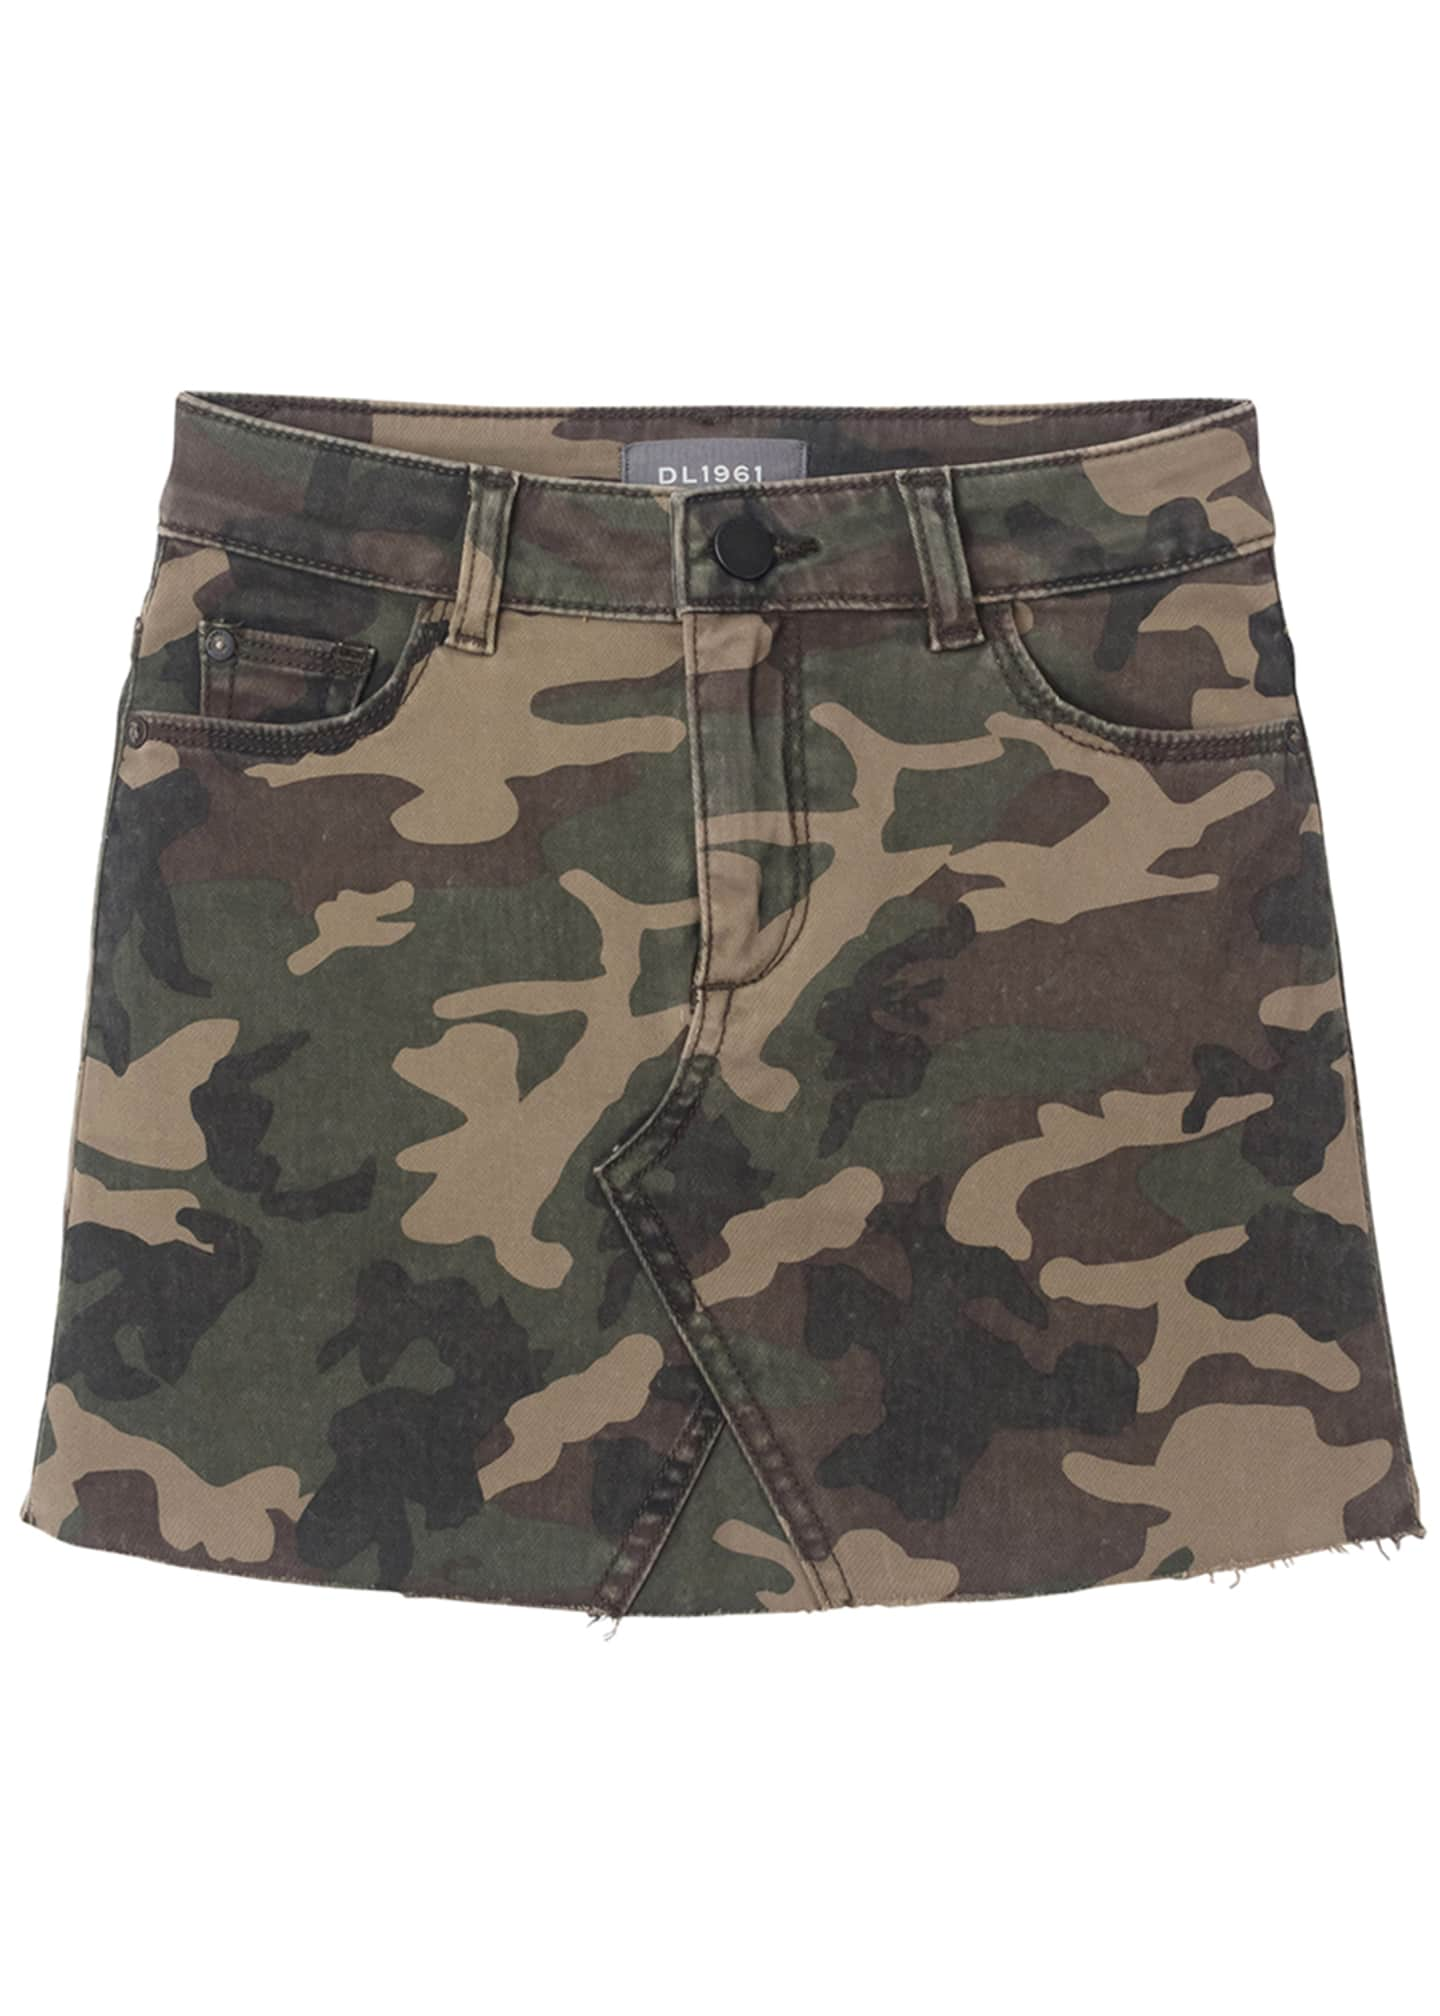 DL 1961 Jenny Raw Edge Camo Skirt, Size